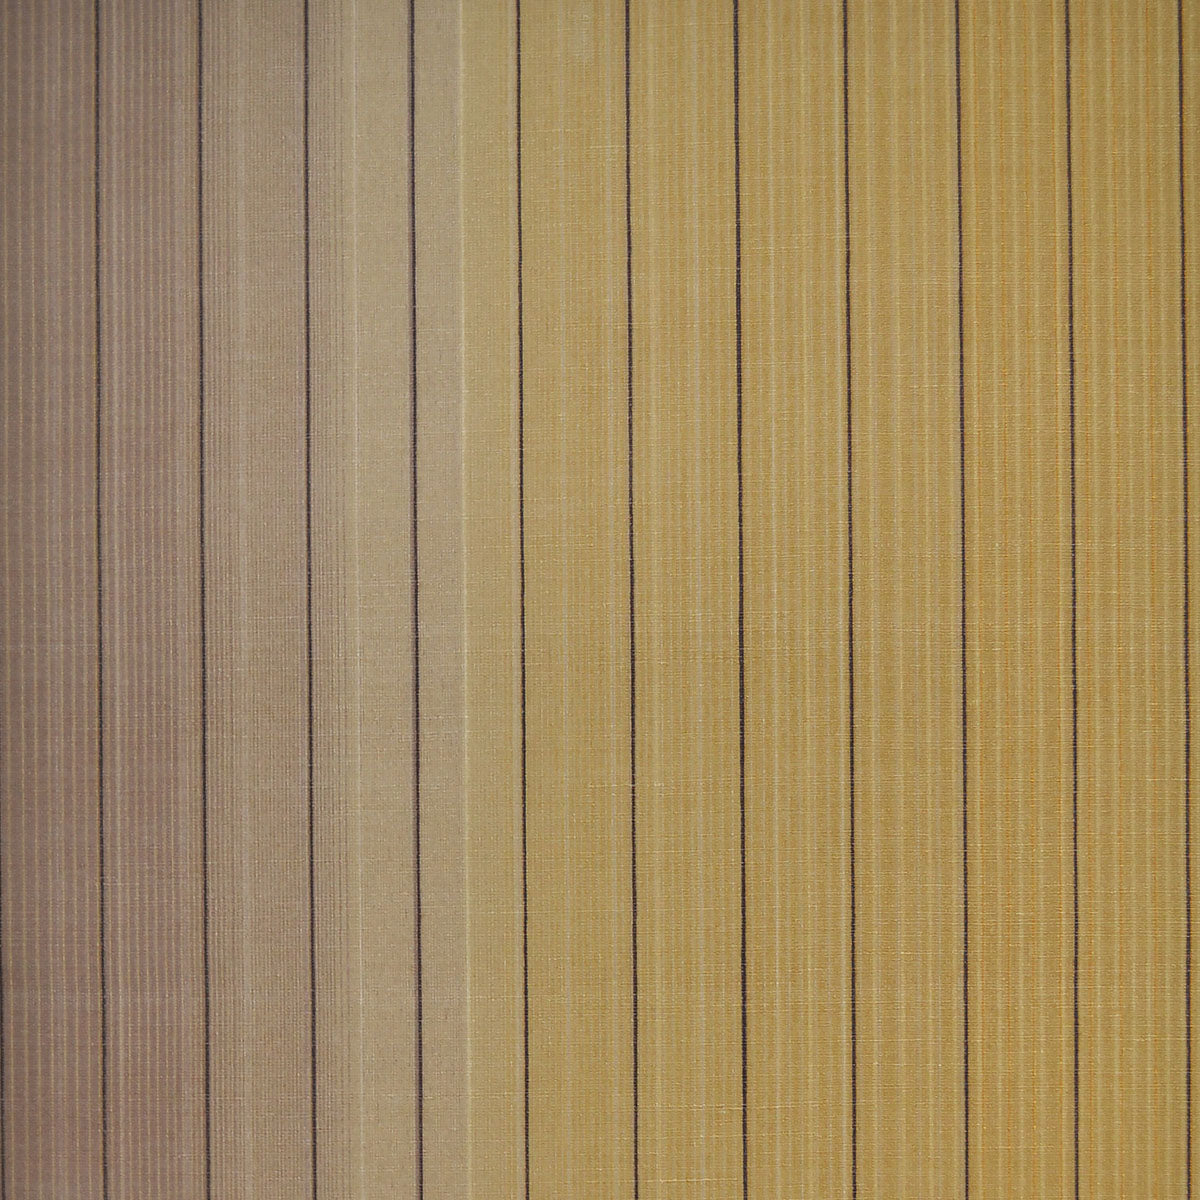 Missoni Home Vetical Stripe Wallpaper - Gold/Tan/Black in Brown